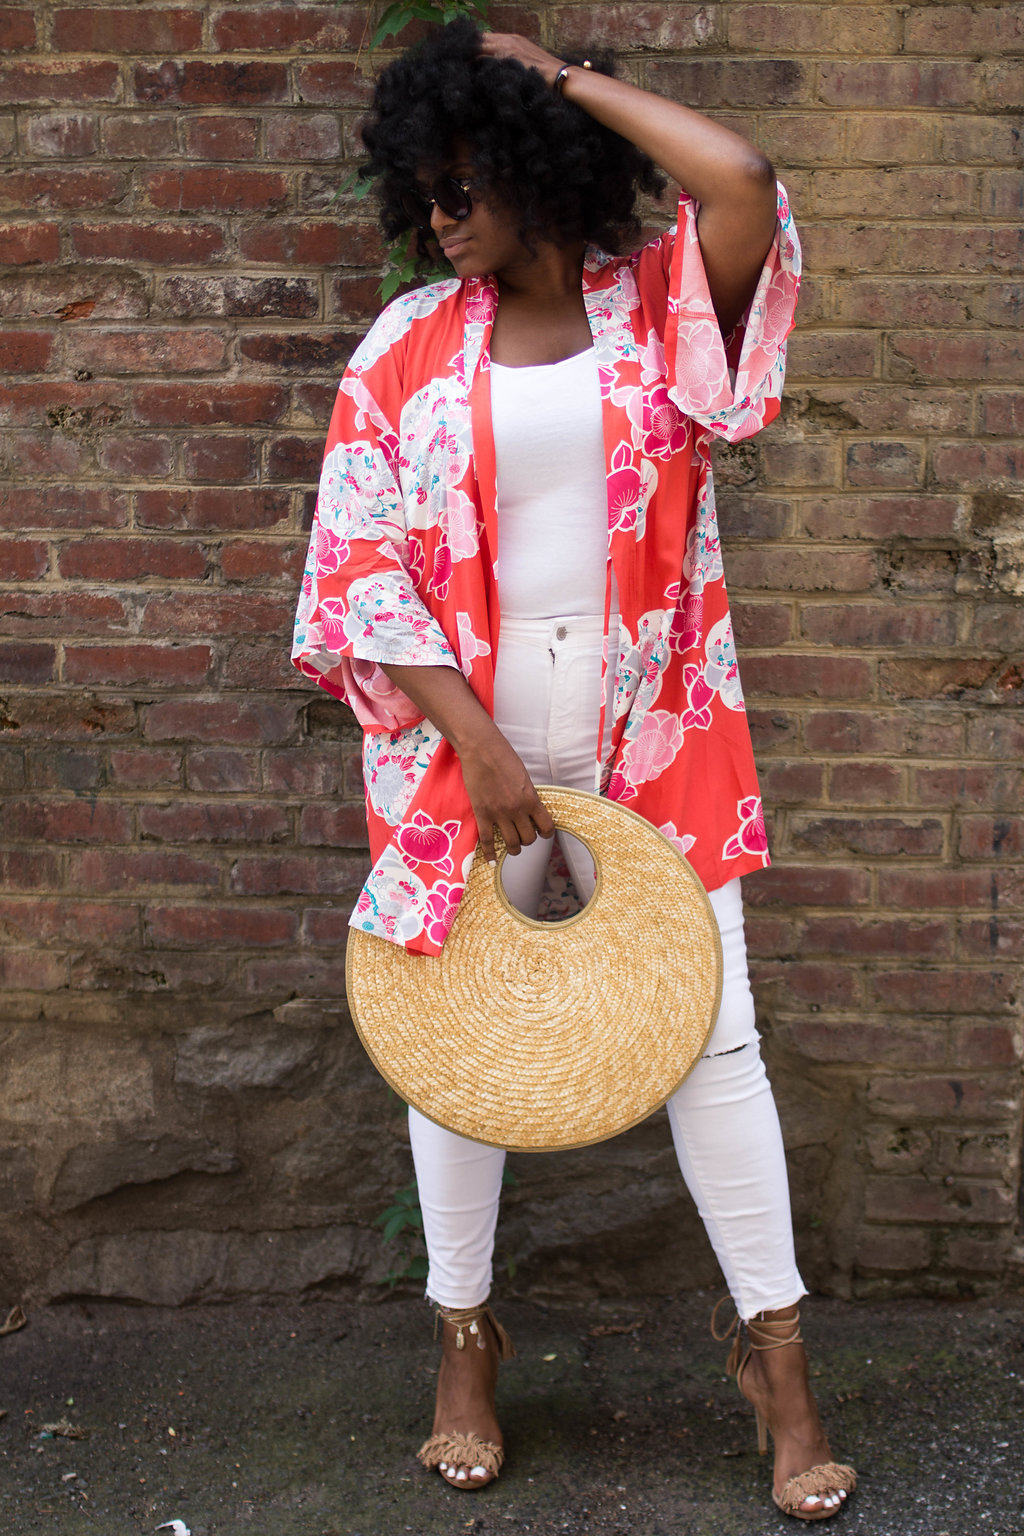 gap-natural-plus size-style-fashion-fro